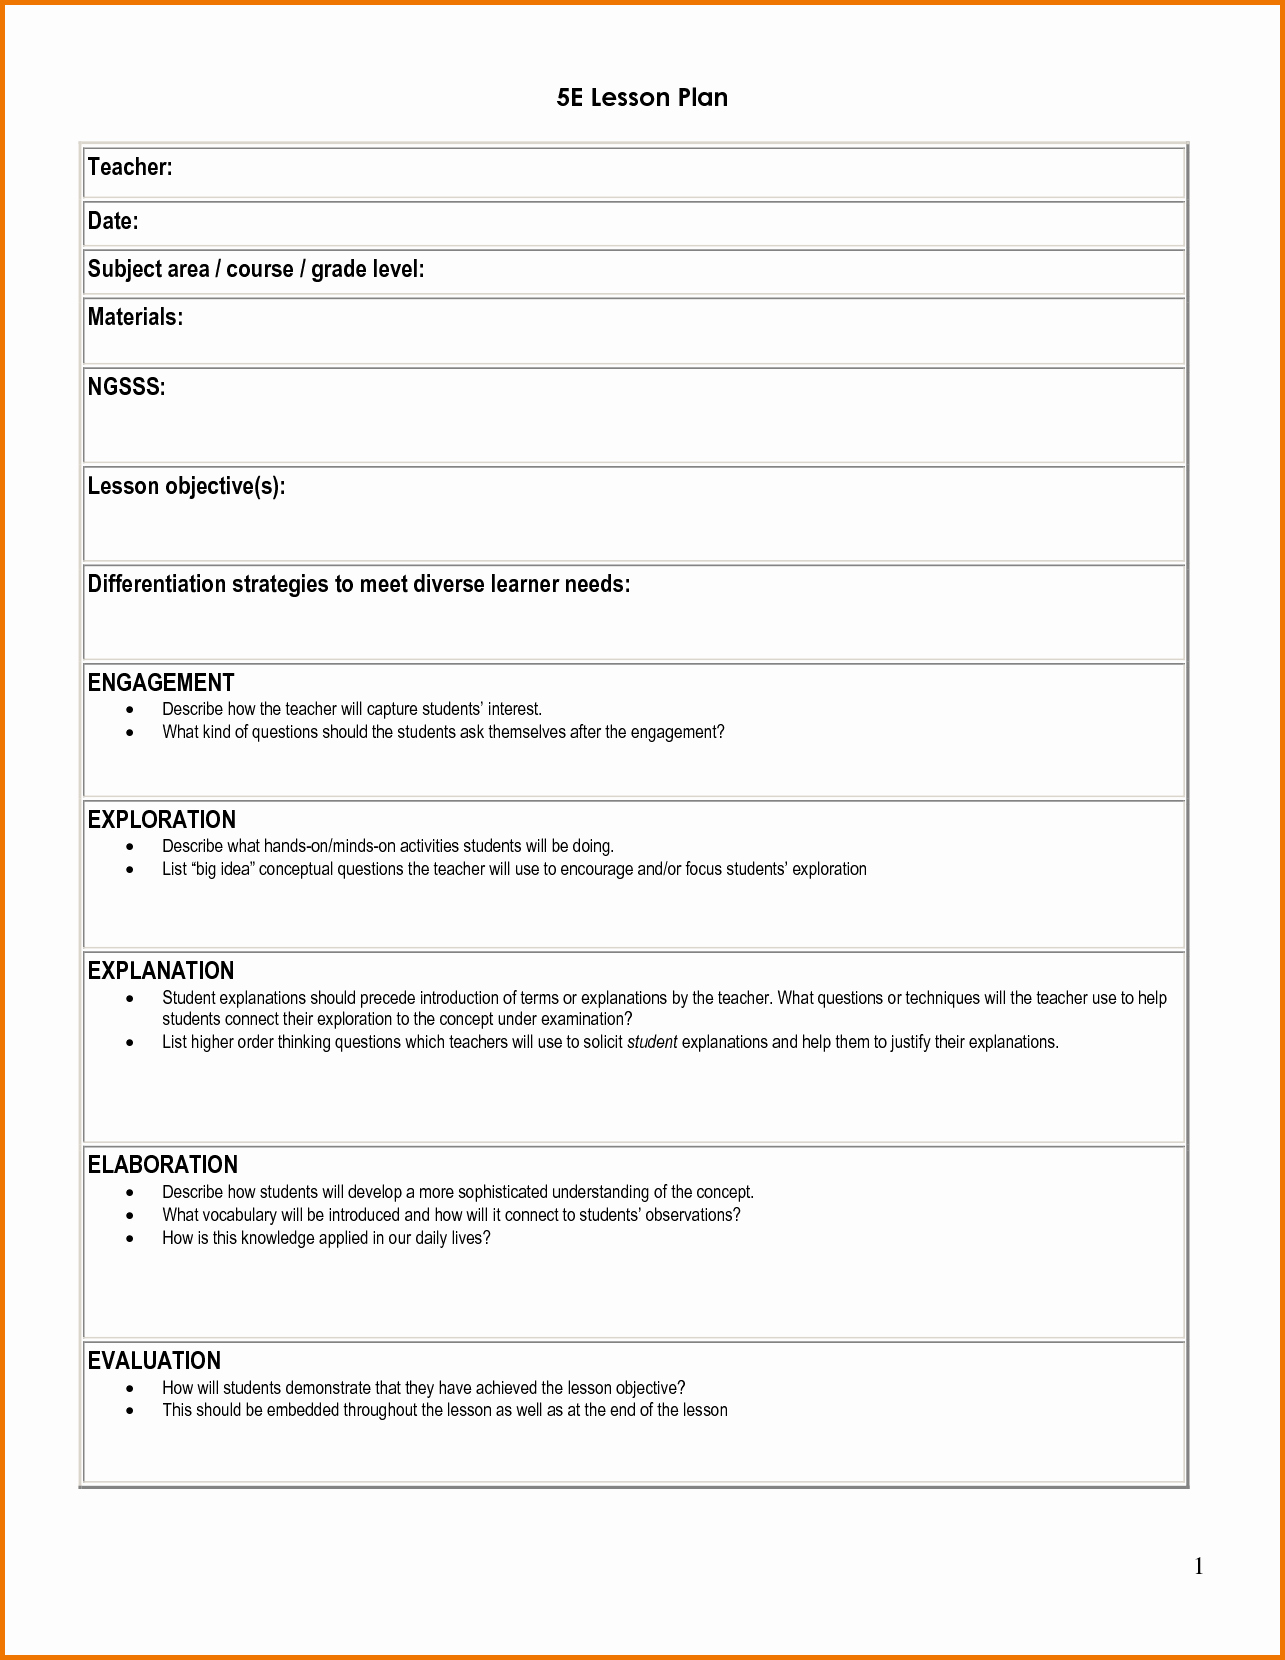 5 E Lesson Plan Template Fresh 5e Student Lesson Planning Template Download as Doc